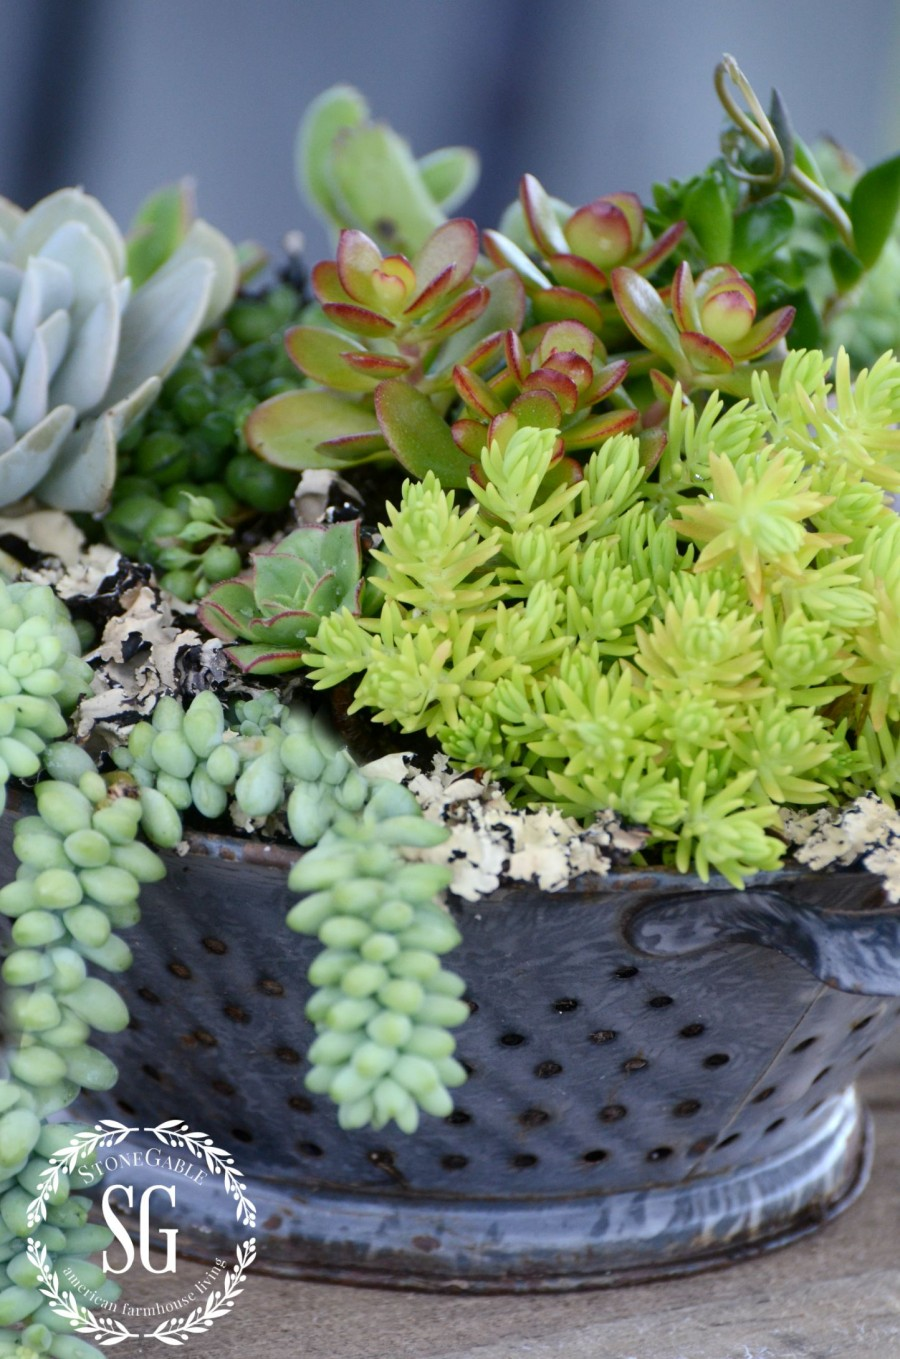 HOW TO PLANT SUCCULENTS-succulents planted in collander-outdoors-stonegableblog.com